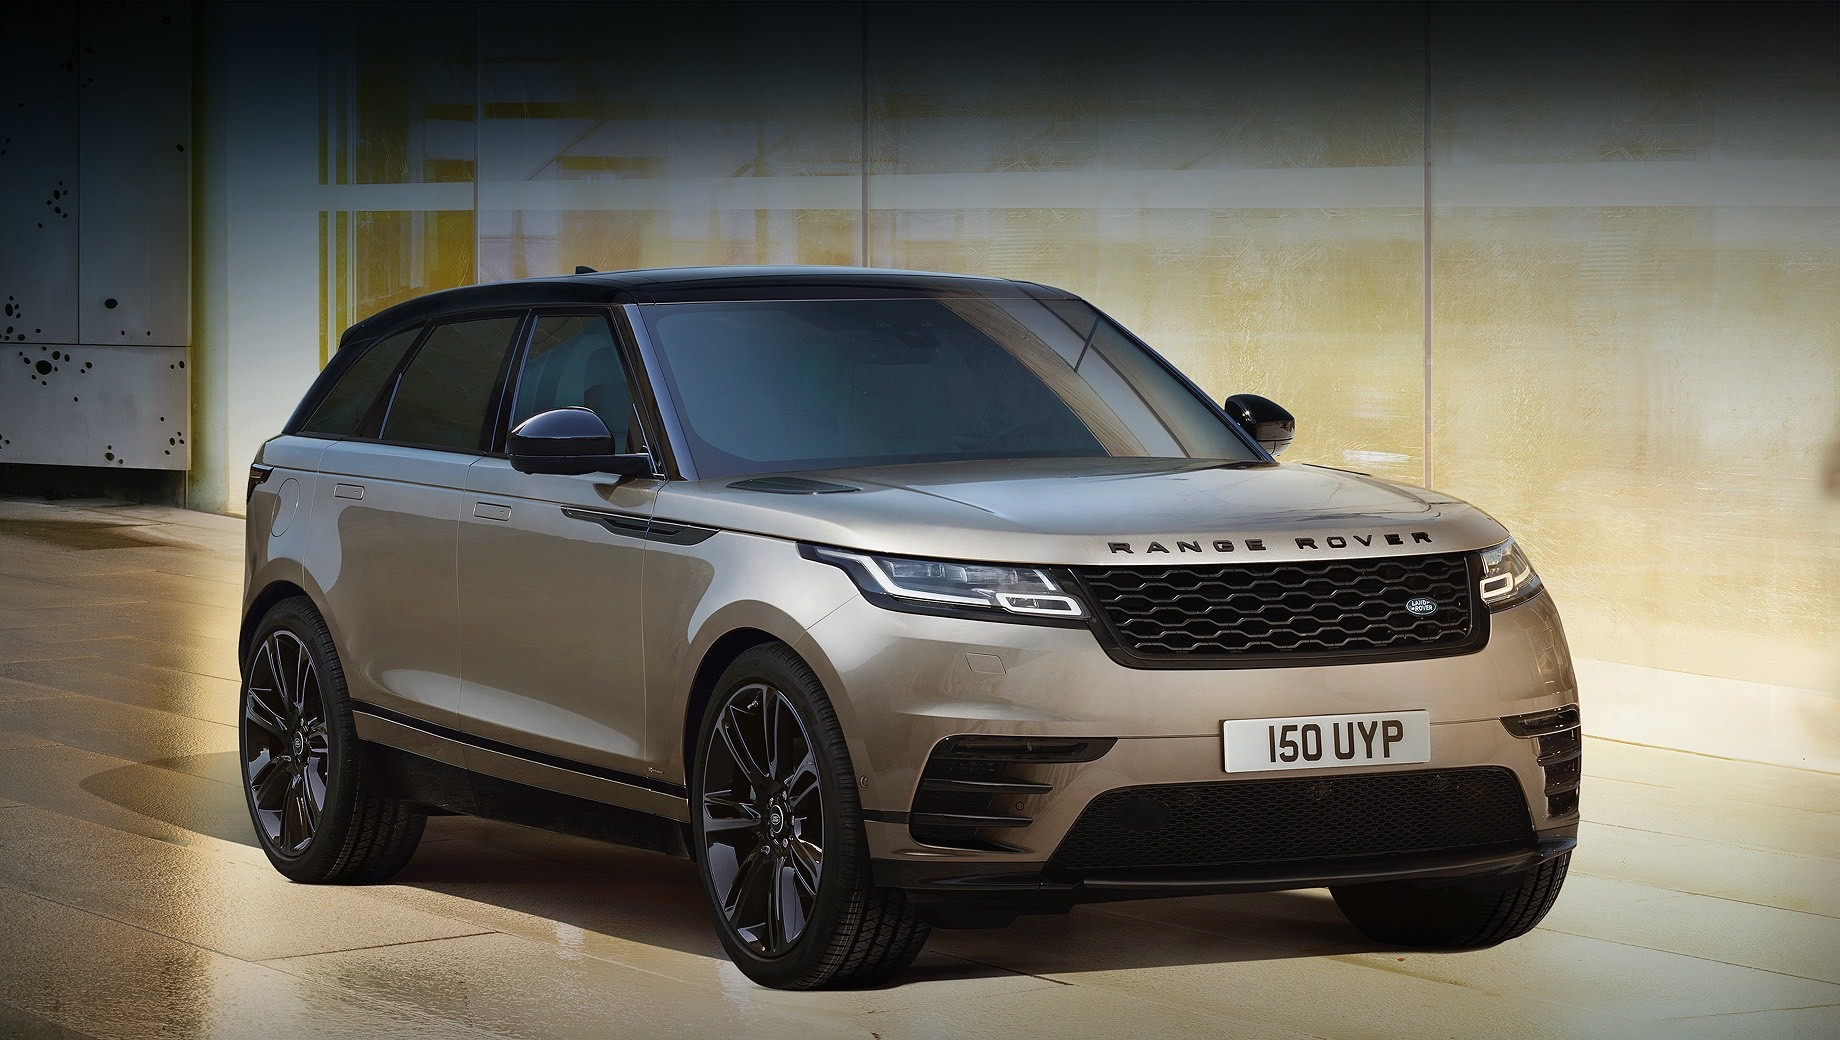 The 2021 Range Rover Velar has arrived in Europe with almost zero visual novelty, but substantial changes in equipment and tech.